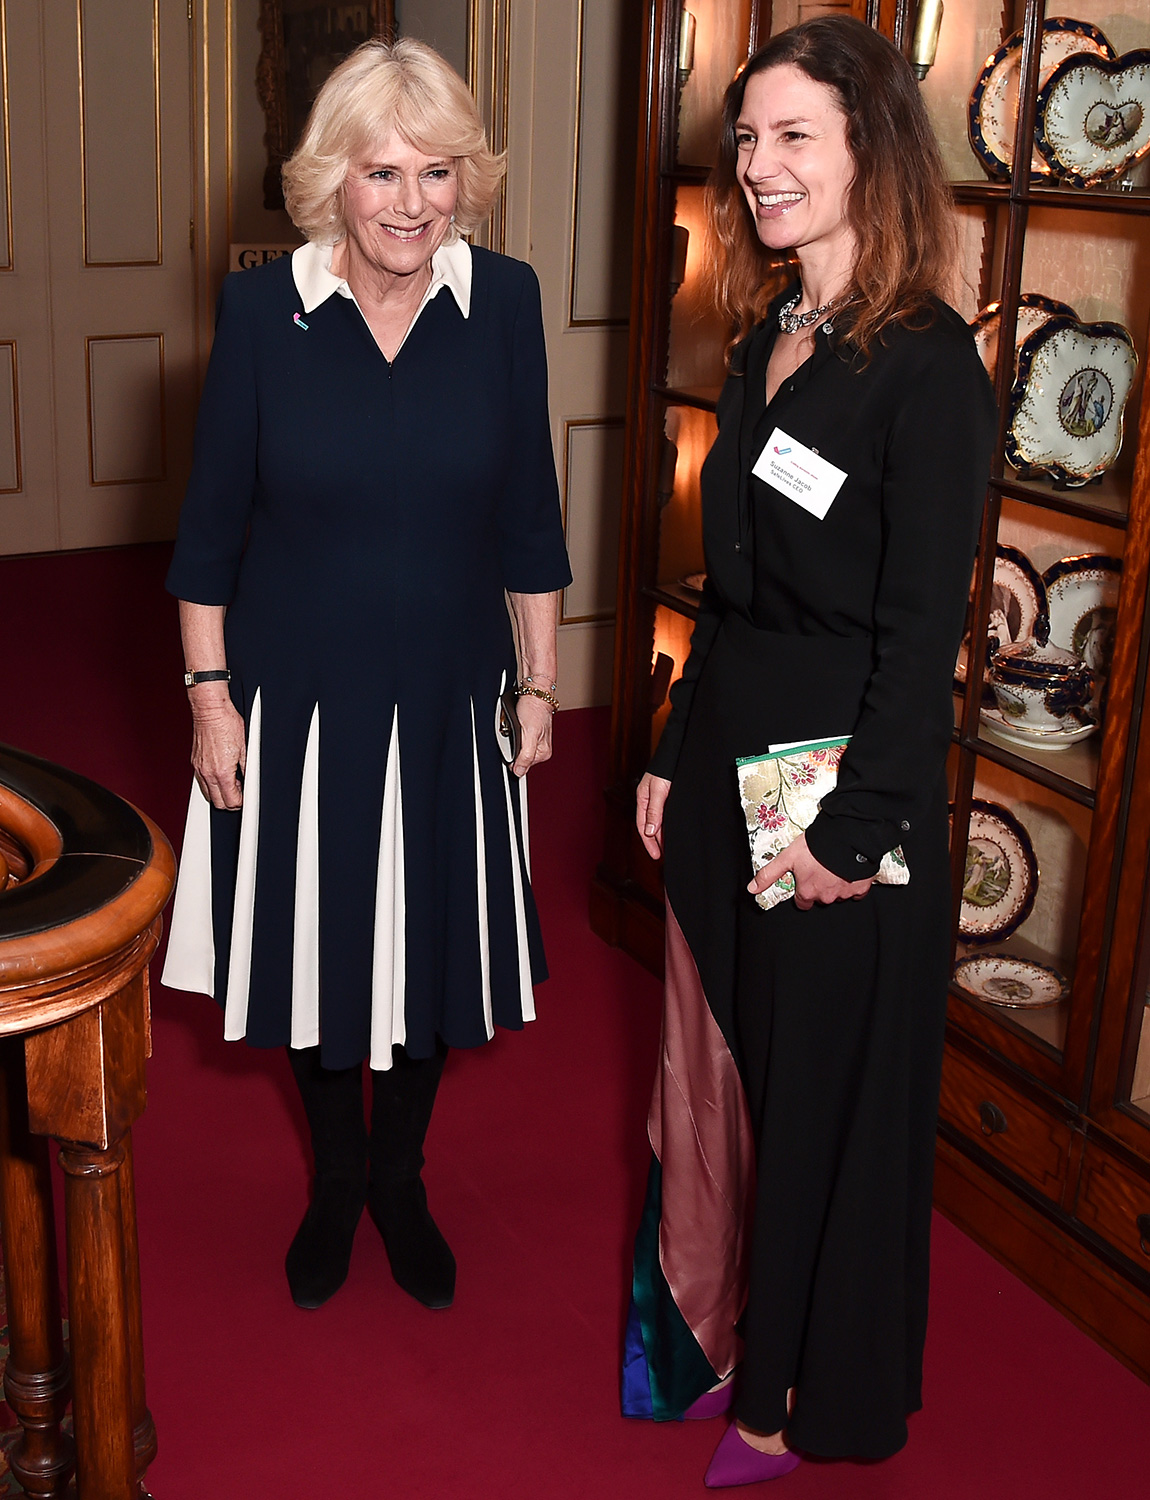 Camilla, Duchess of Cornwall is greeted by CEO of SafeLives Suzanne Jacob as she hosts a reception to acknowledge the 15th anniversary of domestic abuse charity SafeLives at Clarence House on February 12, 2020 in London, England